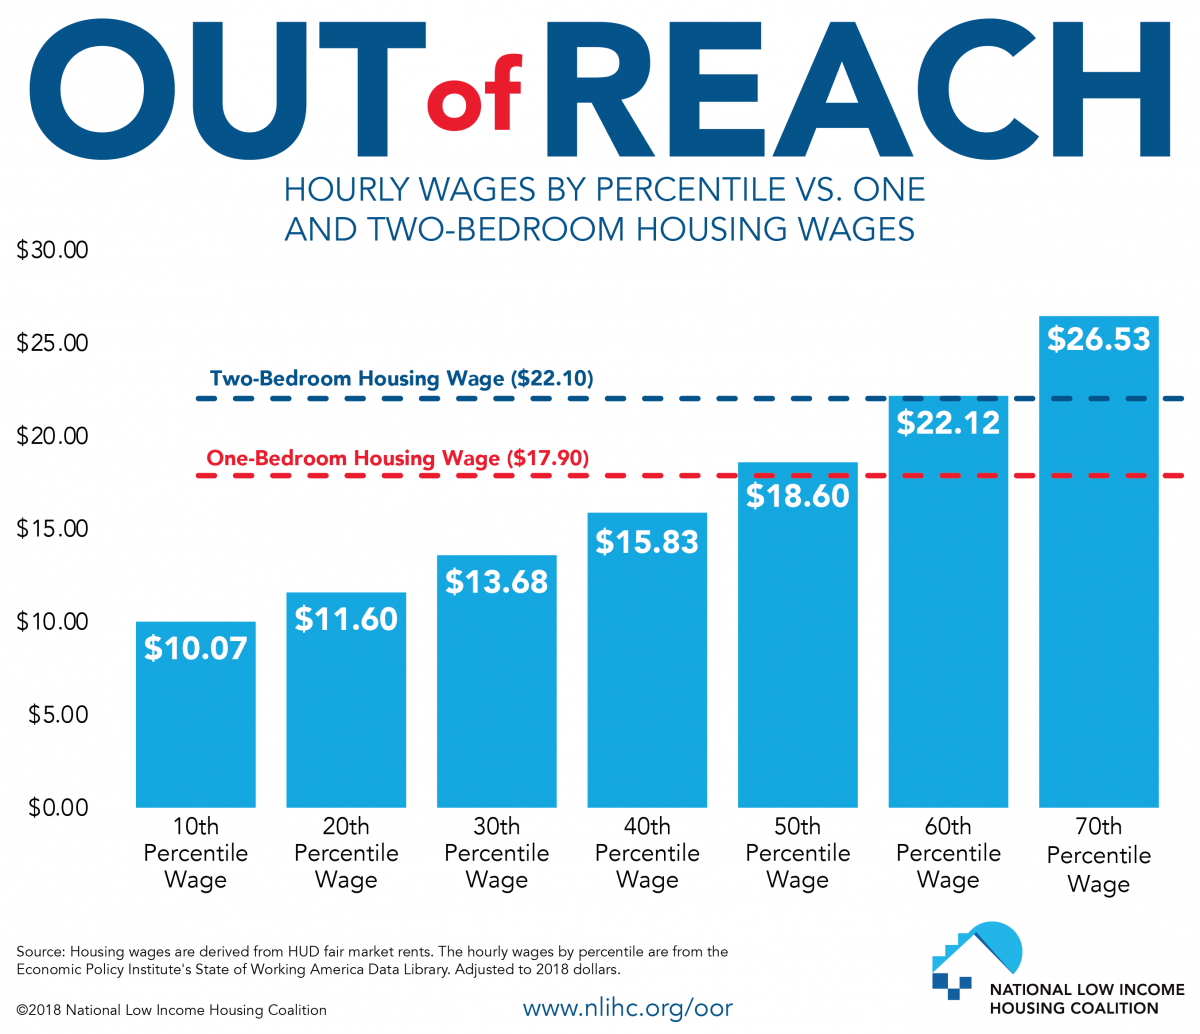 Hourly Wages by Percentile and Housing Wage